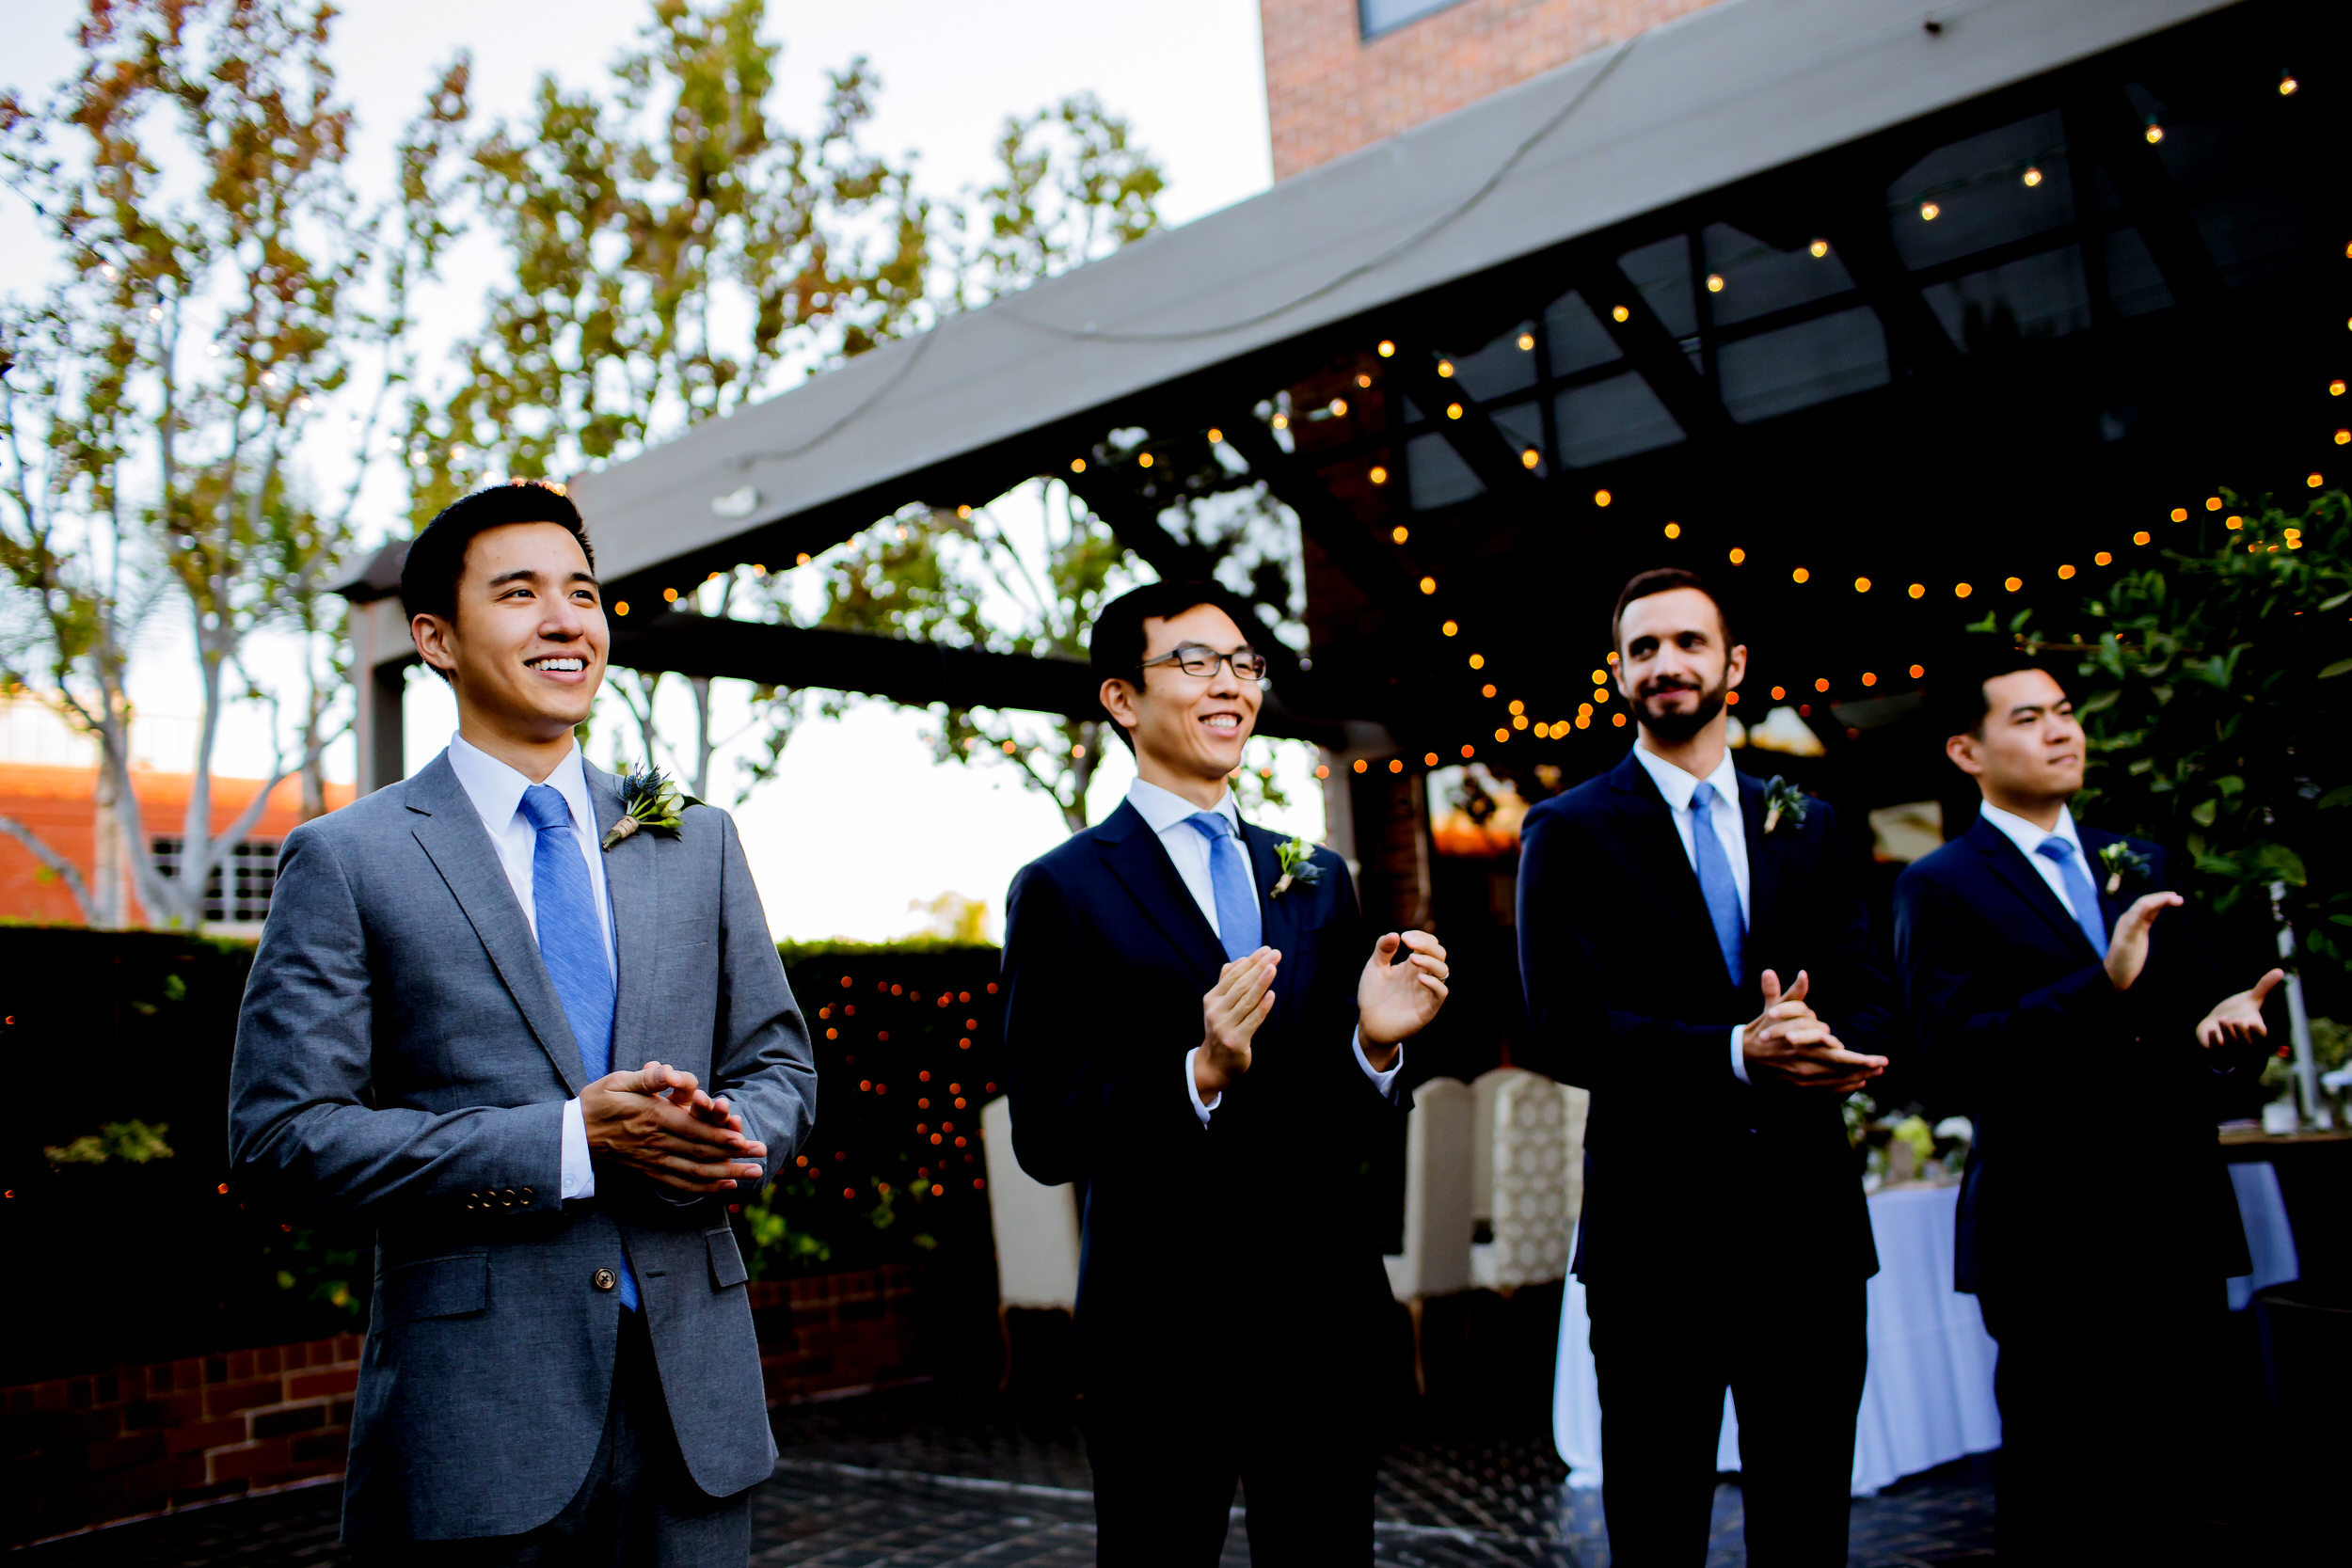 A fun LA Wedding in the city of Santa Monica at a great urban venue - Tiato Kitchen Market Garden Venue Wedding Santa Monica_001